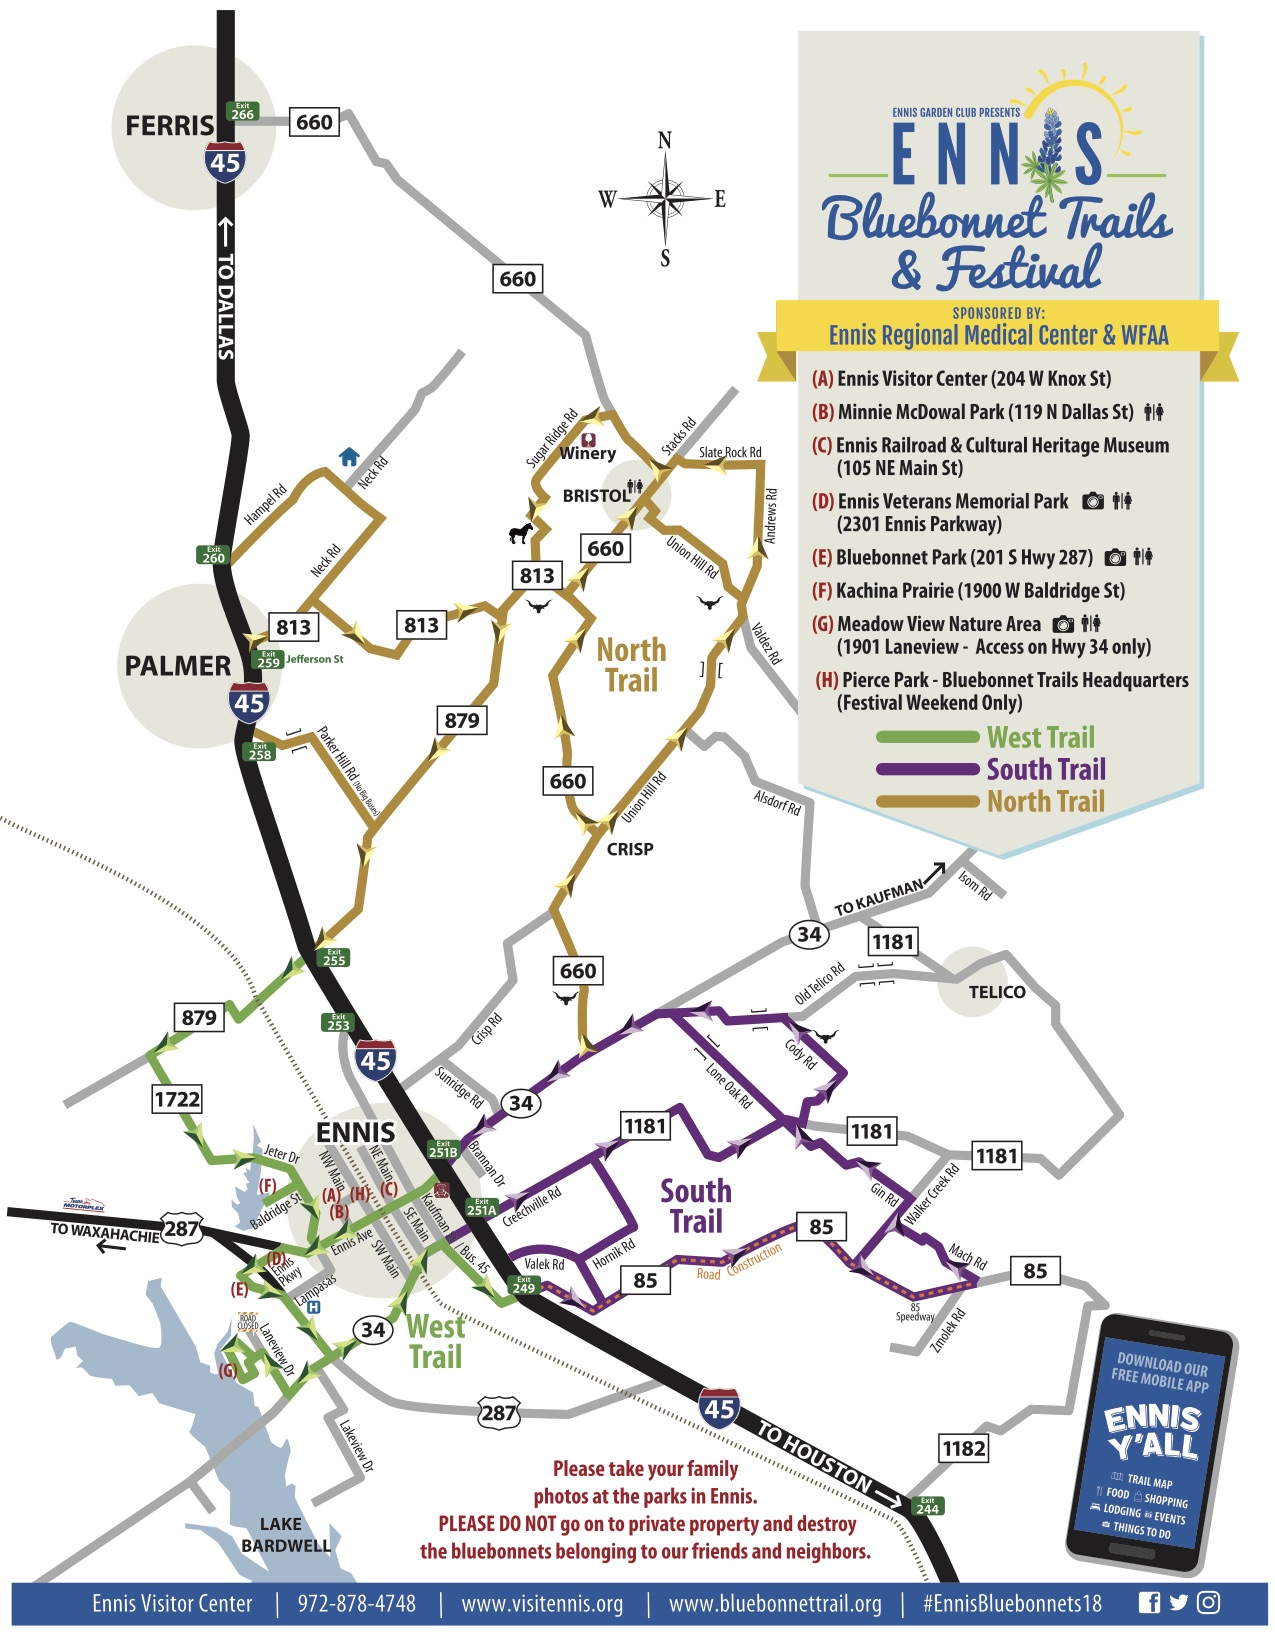 Driving map of the Ennis bluebonnet trails